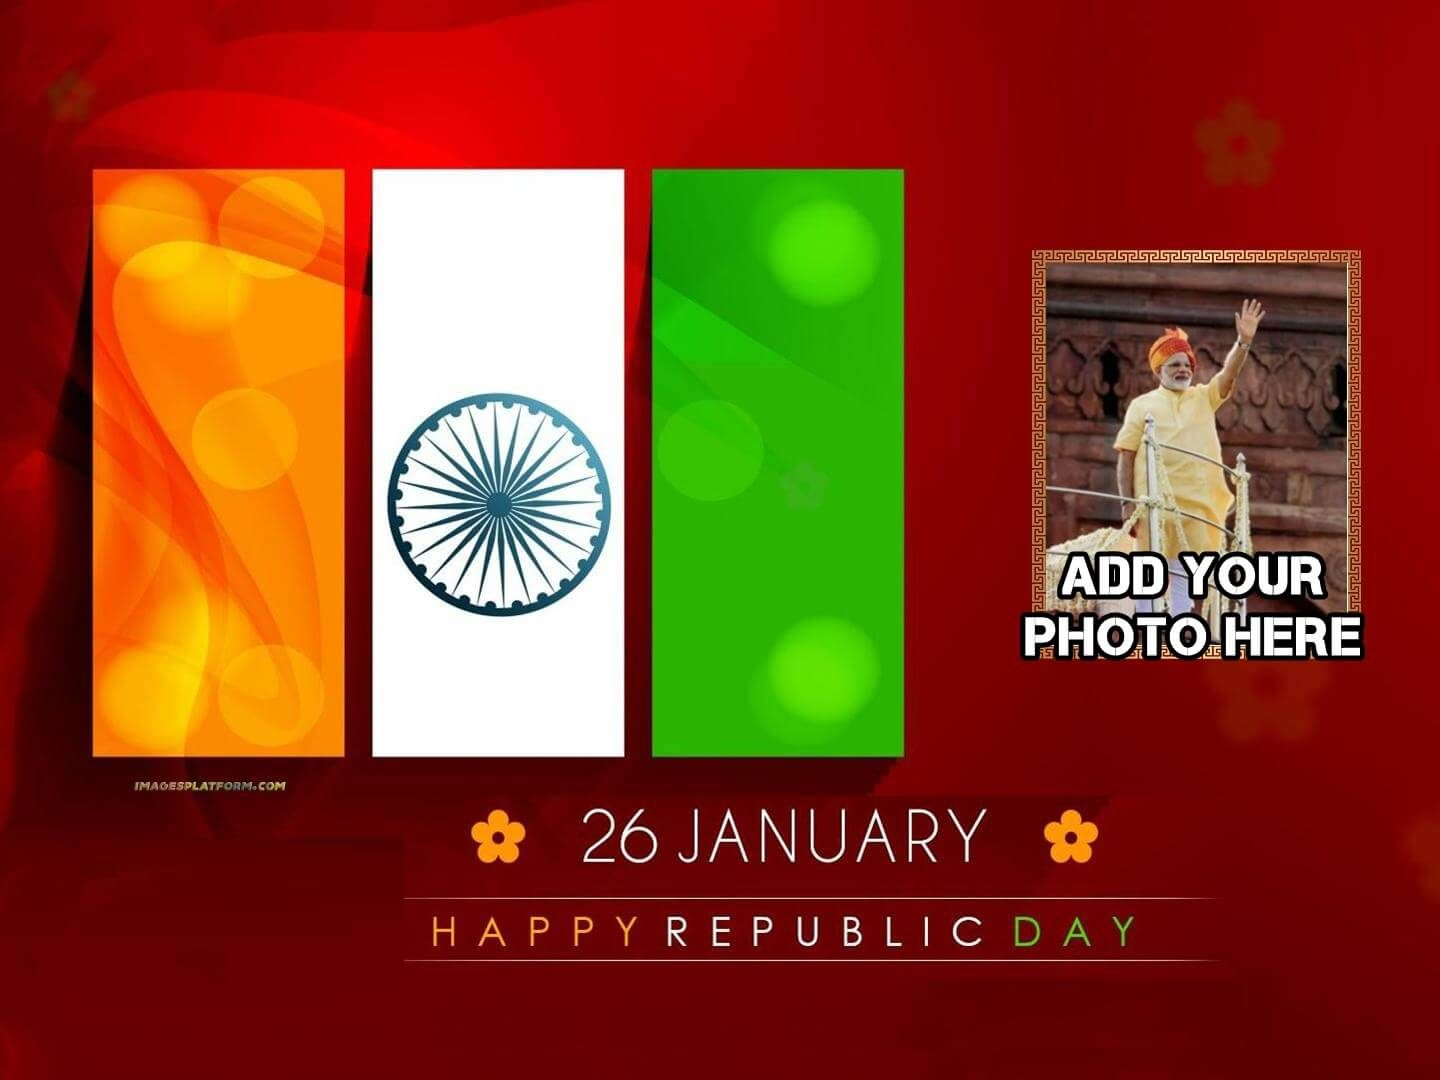 26 January India Republic Day Hd Frame Photo In 2021 Photo Frame Framed Flag Boy Frame 26 january 2021 images hd dp